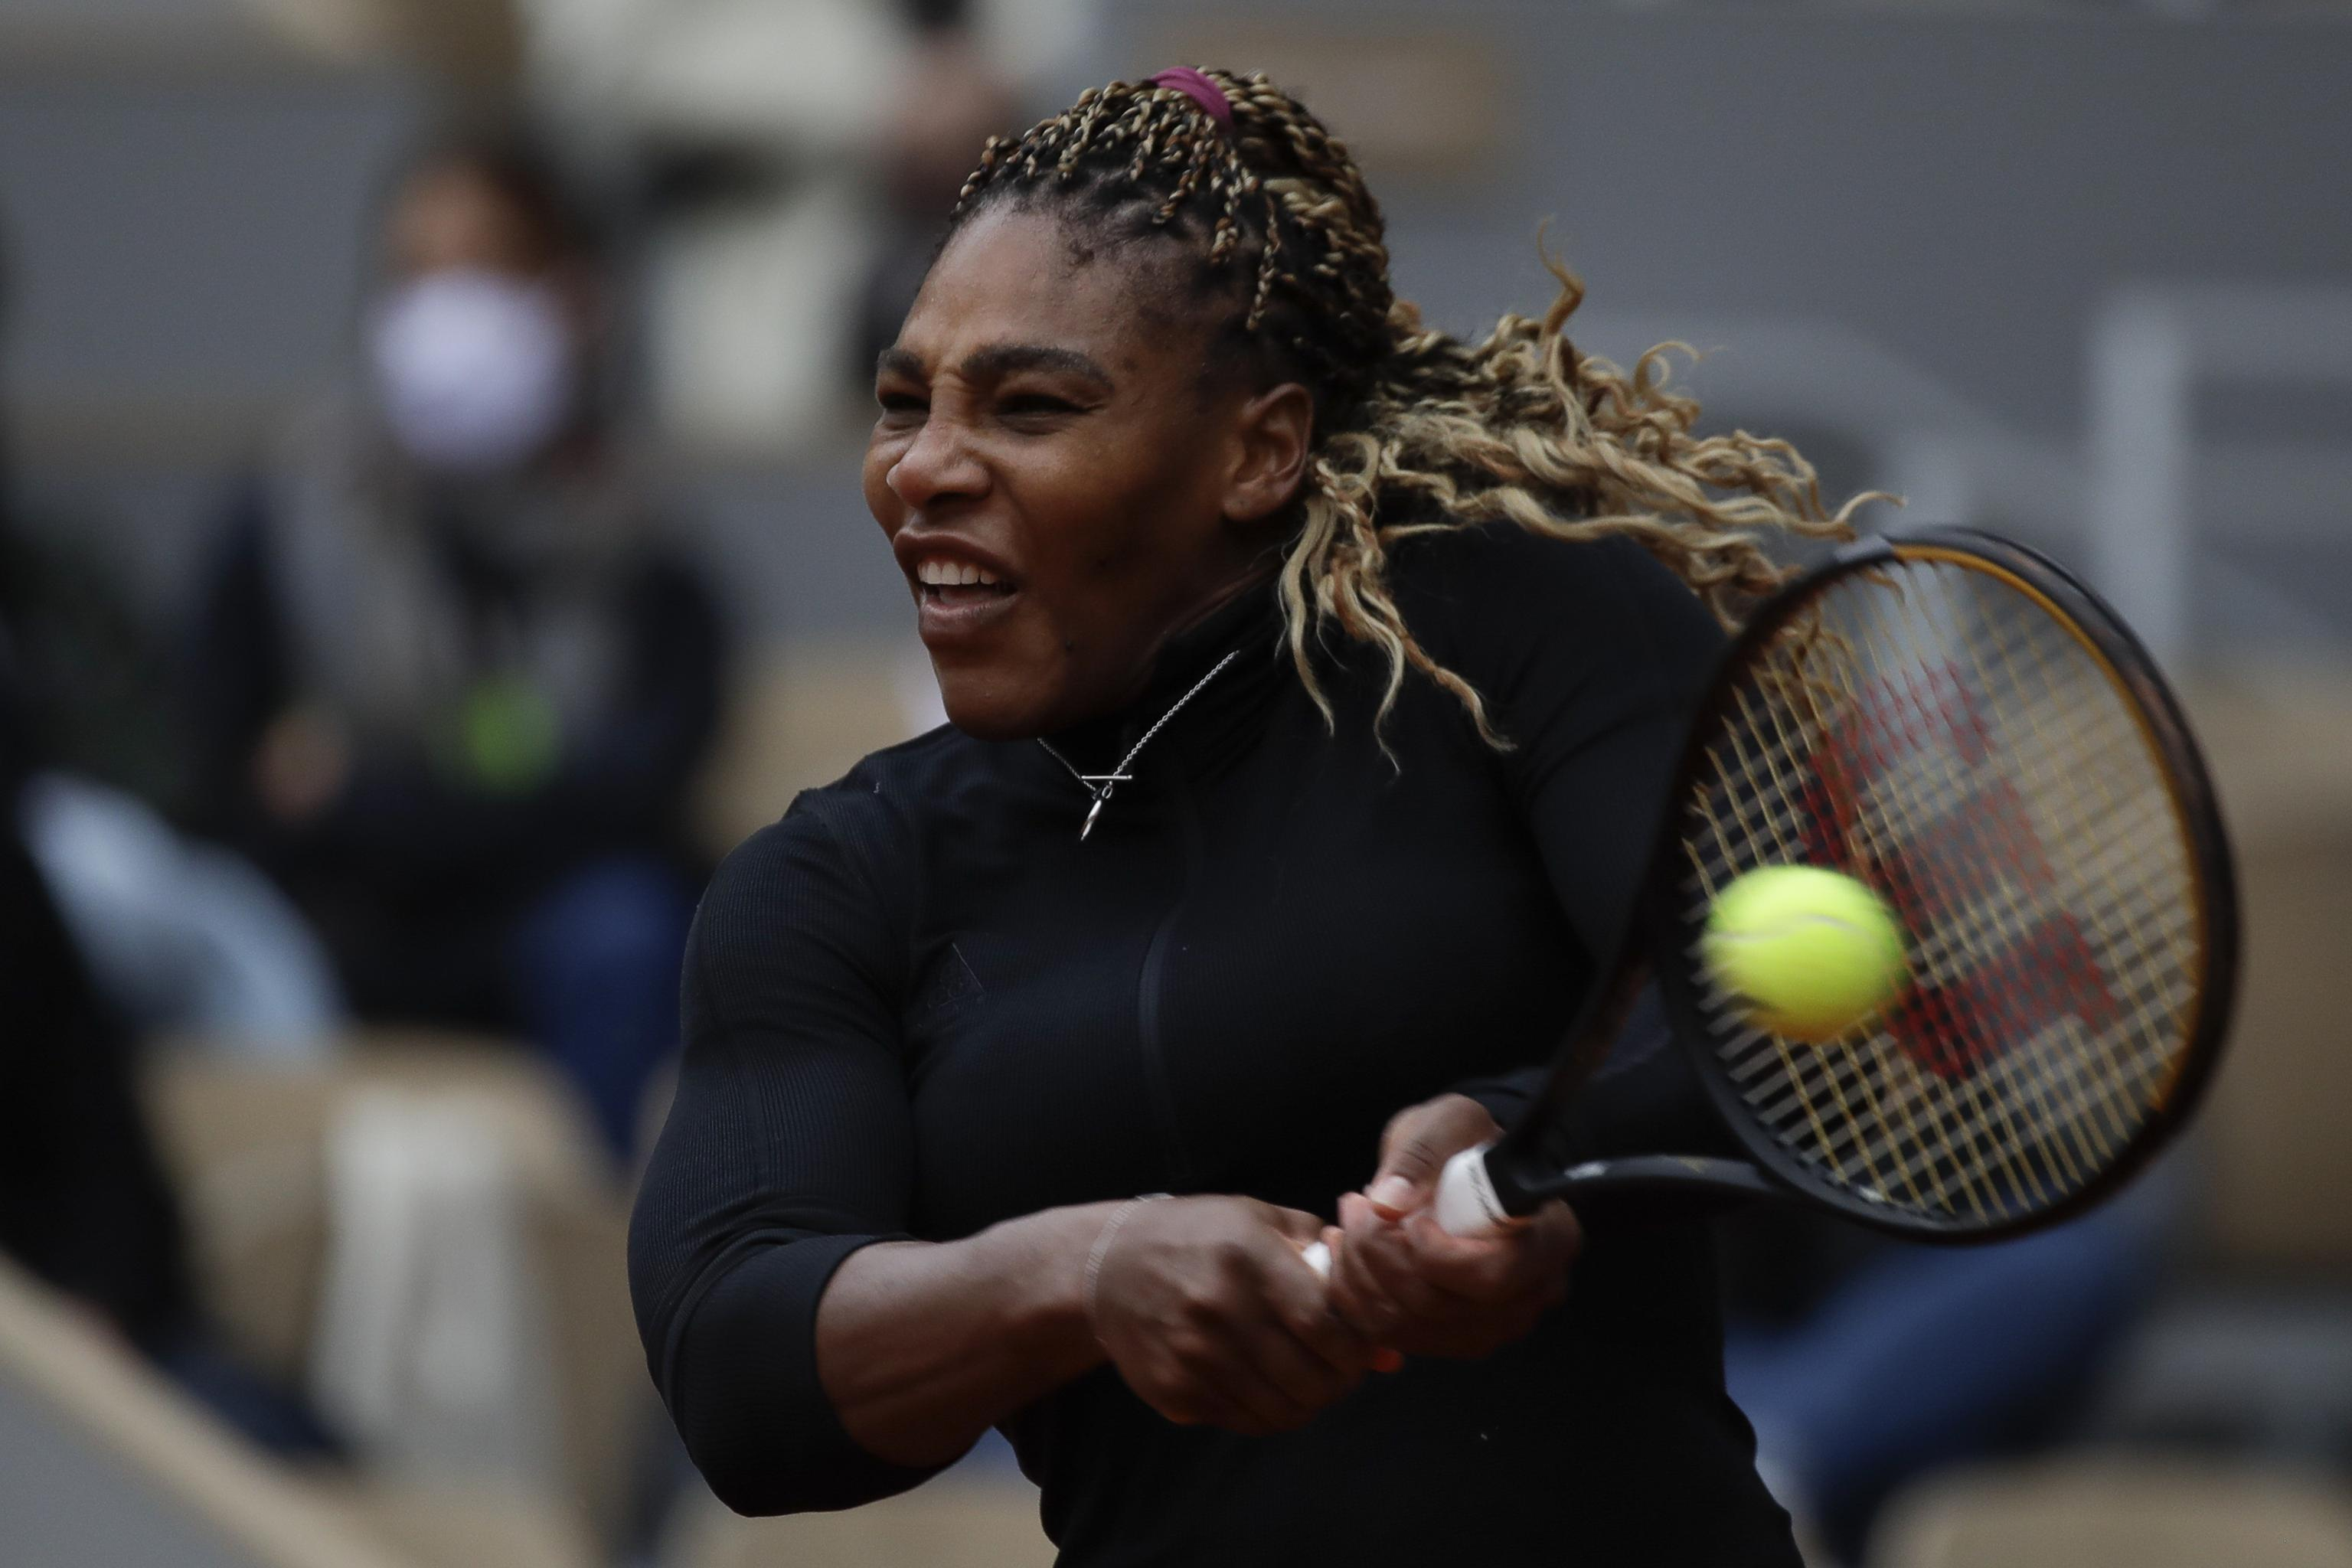 French Open 2020 Serena Williams Rafael Nadal Wins Highlight Monday S Results Bleacher Report Latest News Videos And Highlights